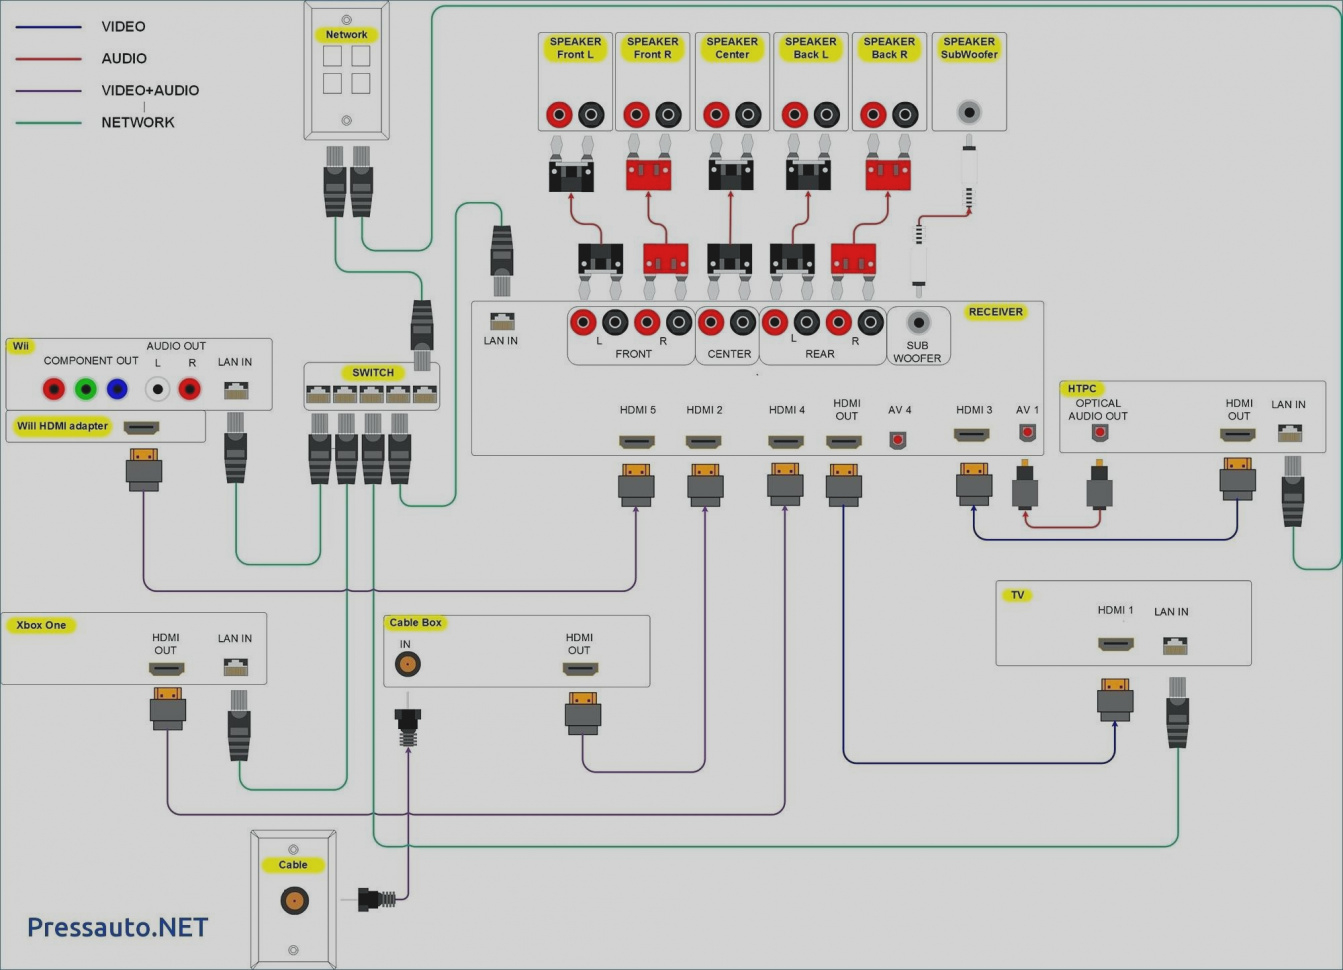 att uverse home wiring diagram whirlpool tumble dryer cat5 sample |